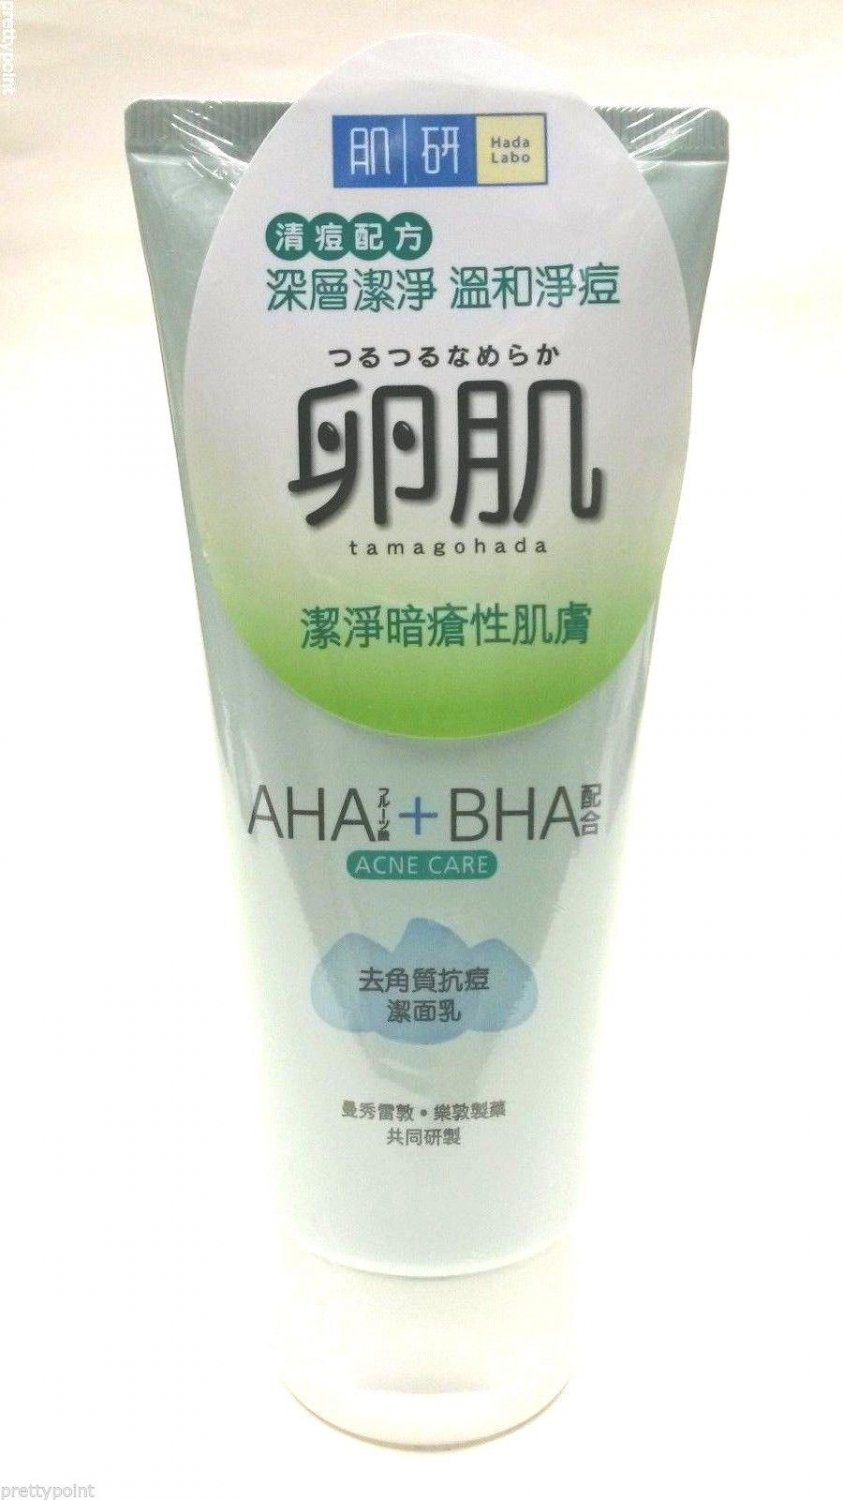 Japan Hada Labo Tamagohada AHA + BHA Oil Control Face Wash Cleansing Foam 130g